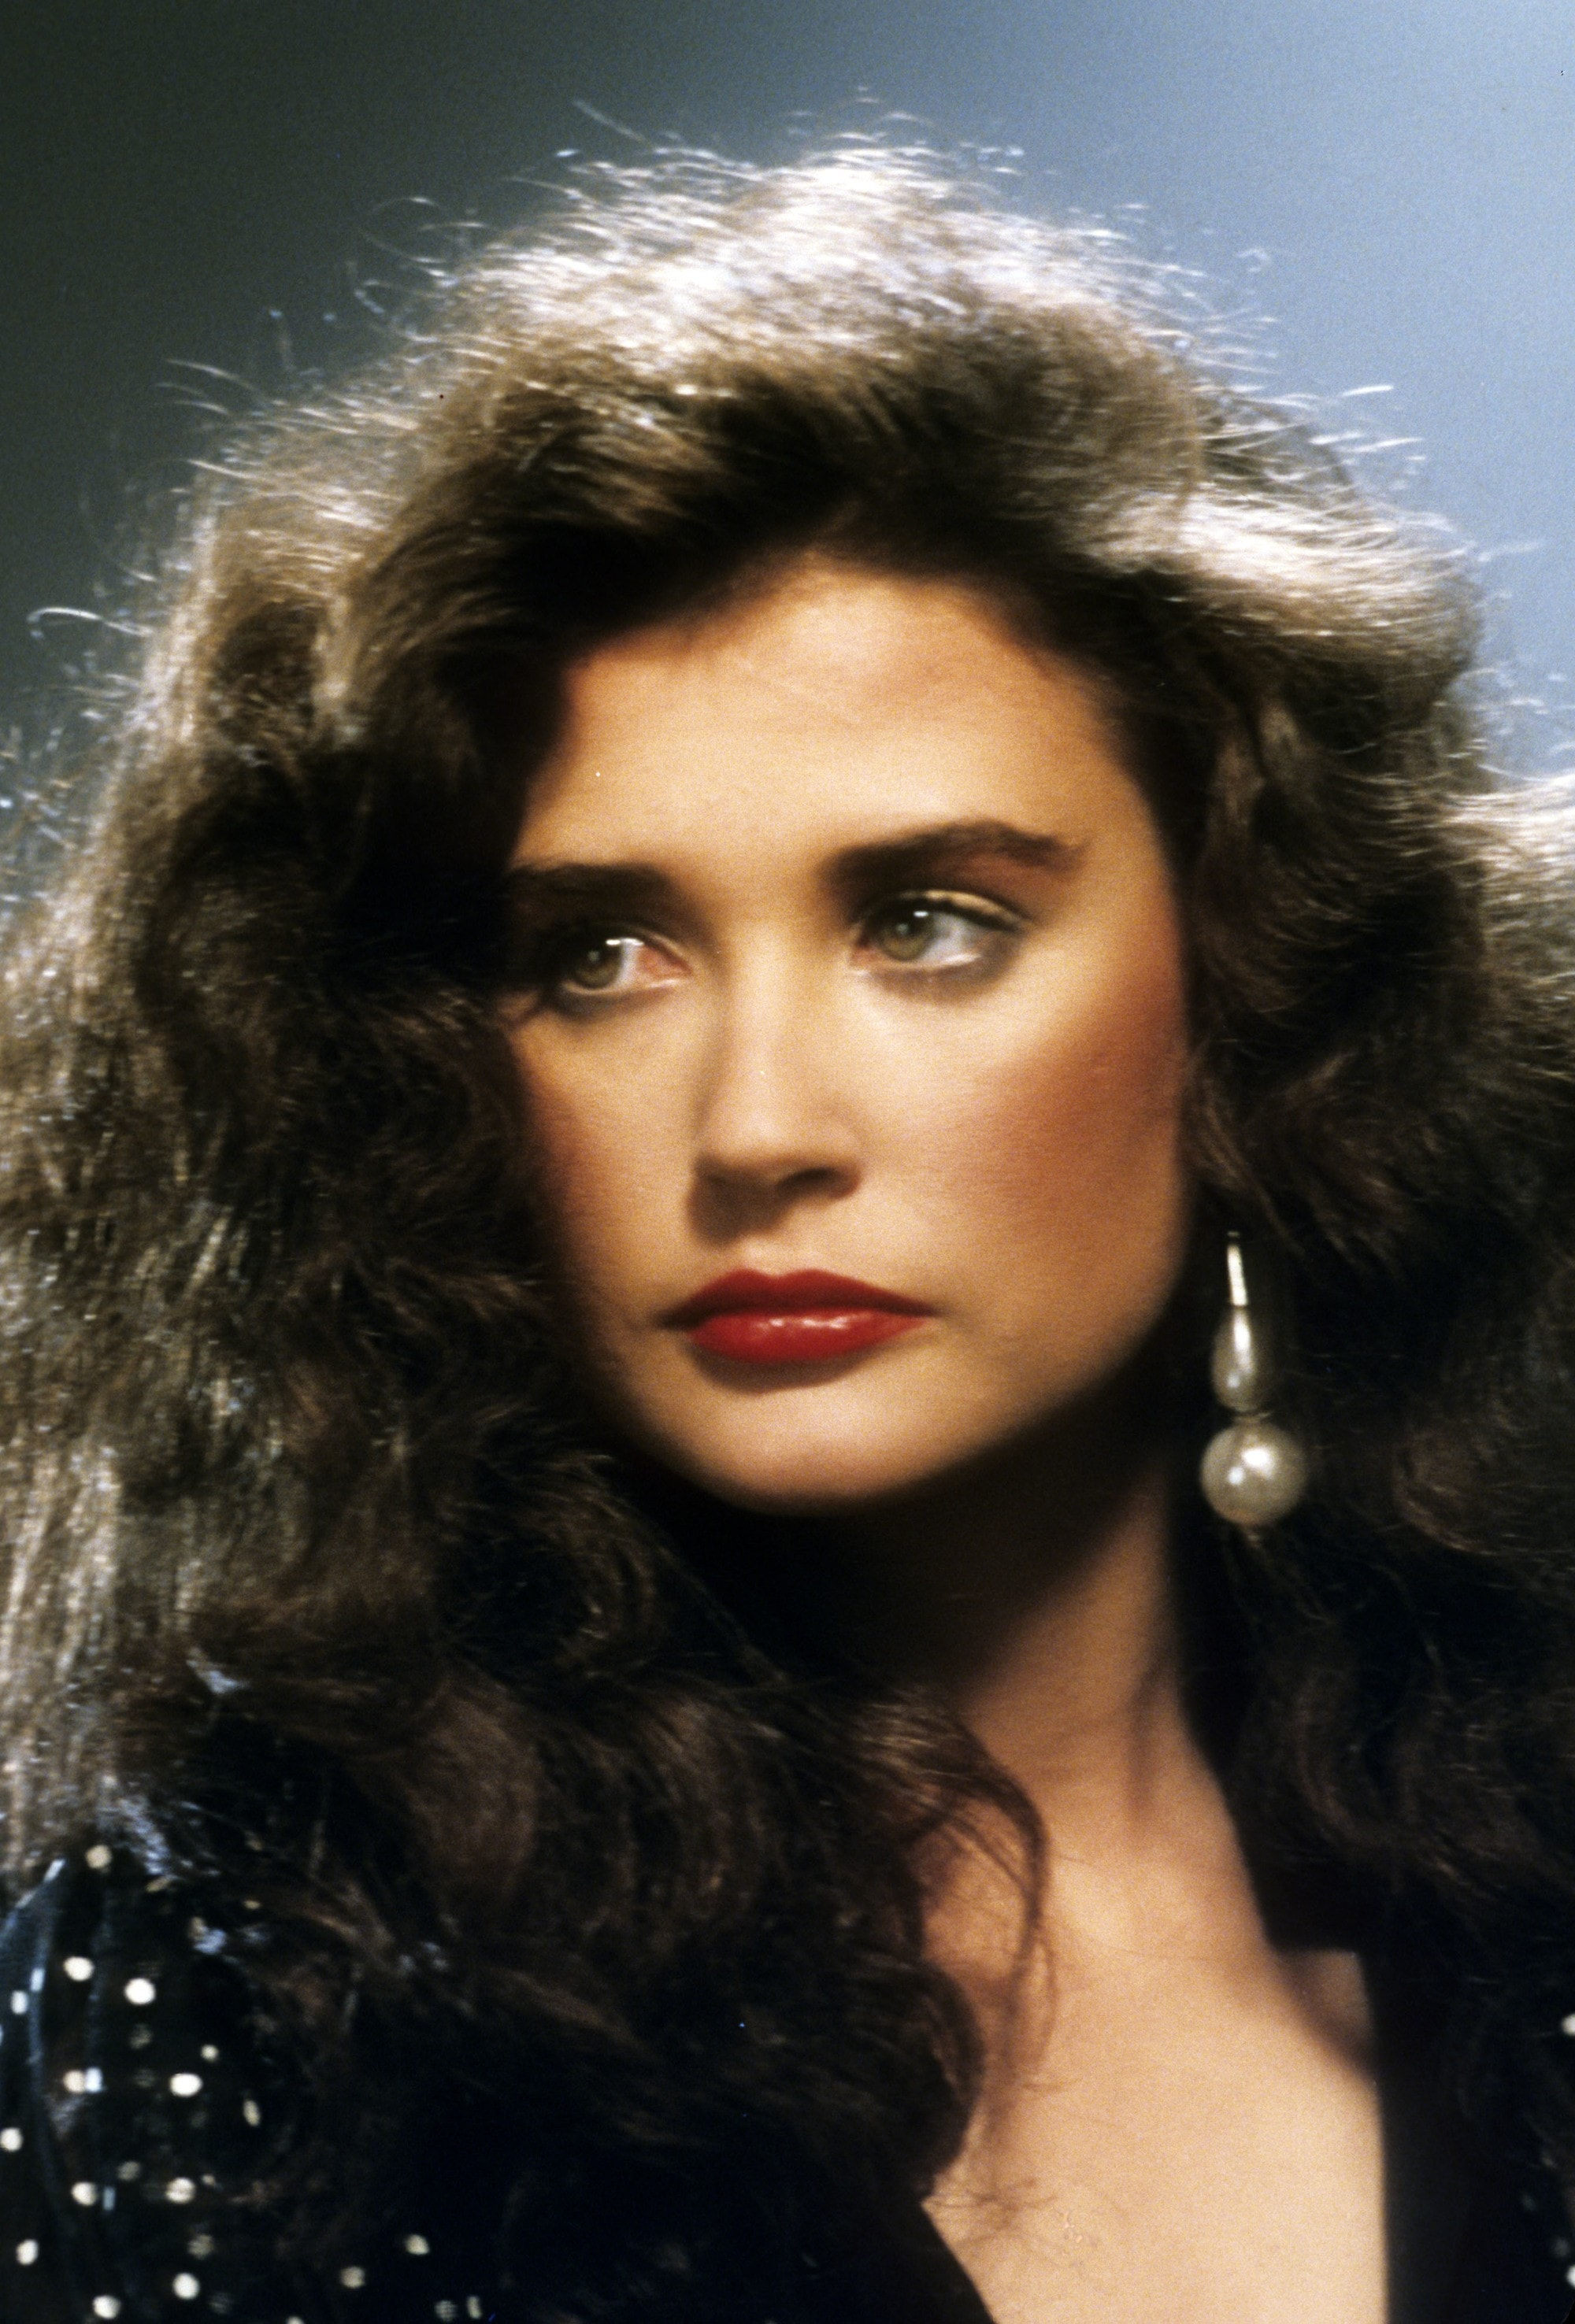 23 awesome  80s hairstyles that are making a comeback 80s hairstyles  Young Demi Moore with brown curly wavy big  80s hair  wearing a